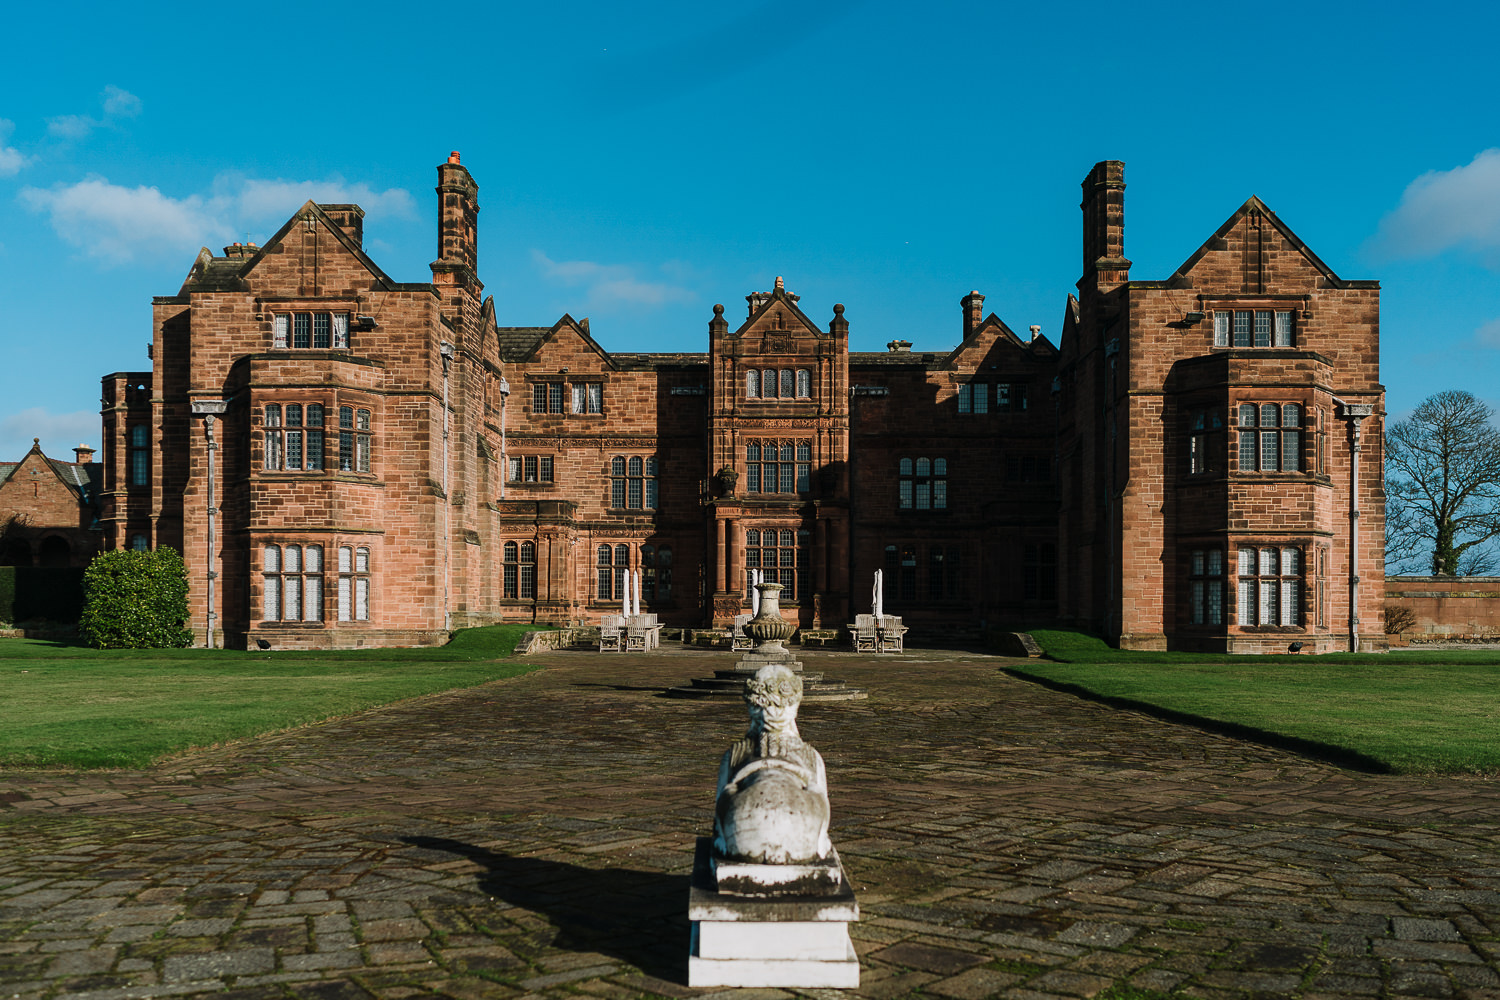 Photo of Thornton Manor in the sun